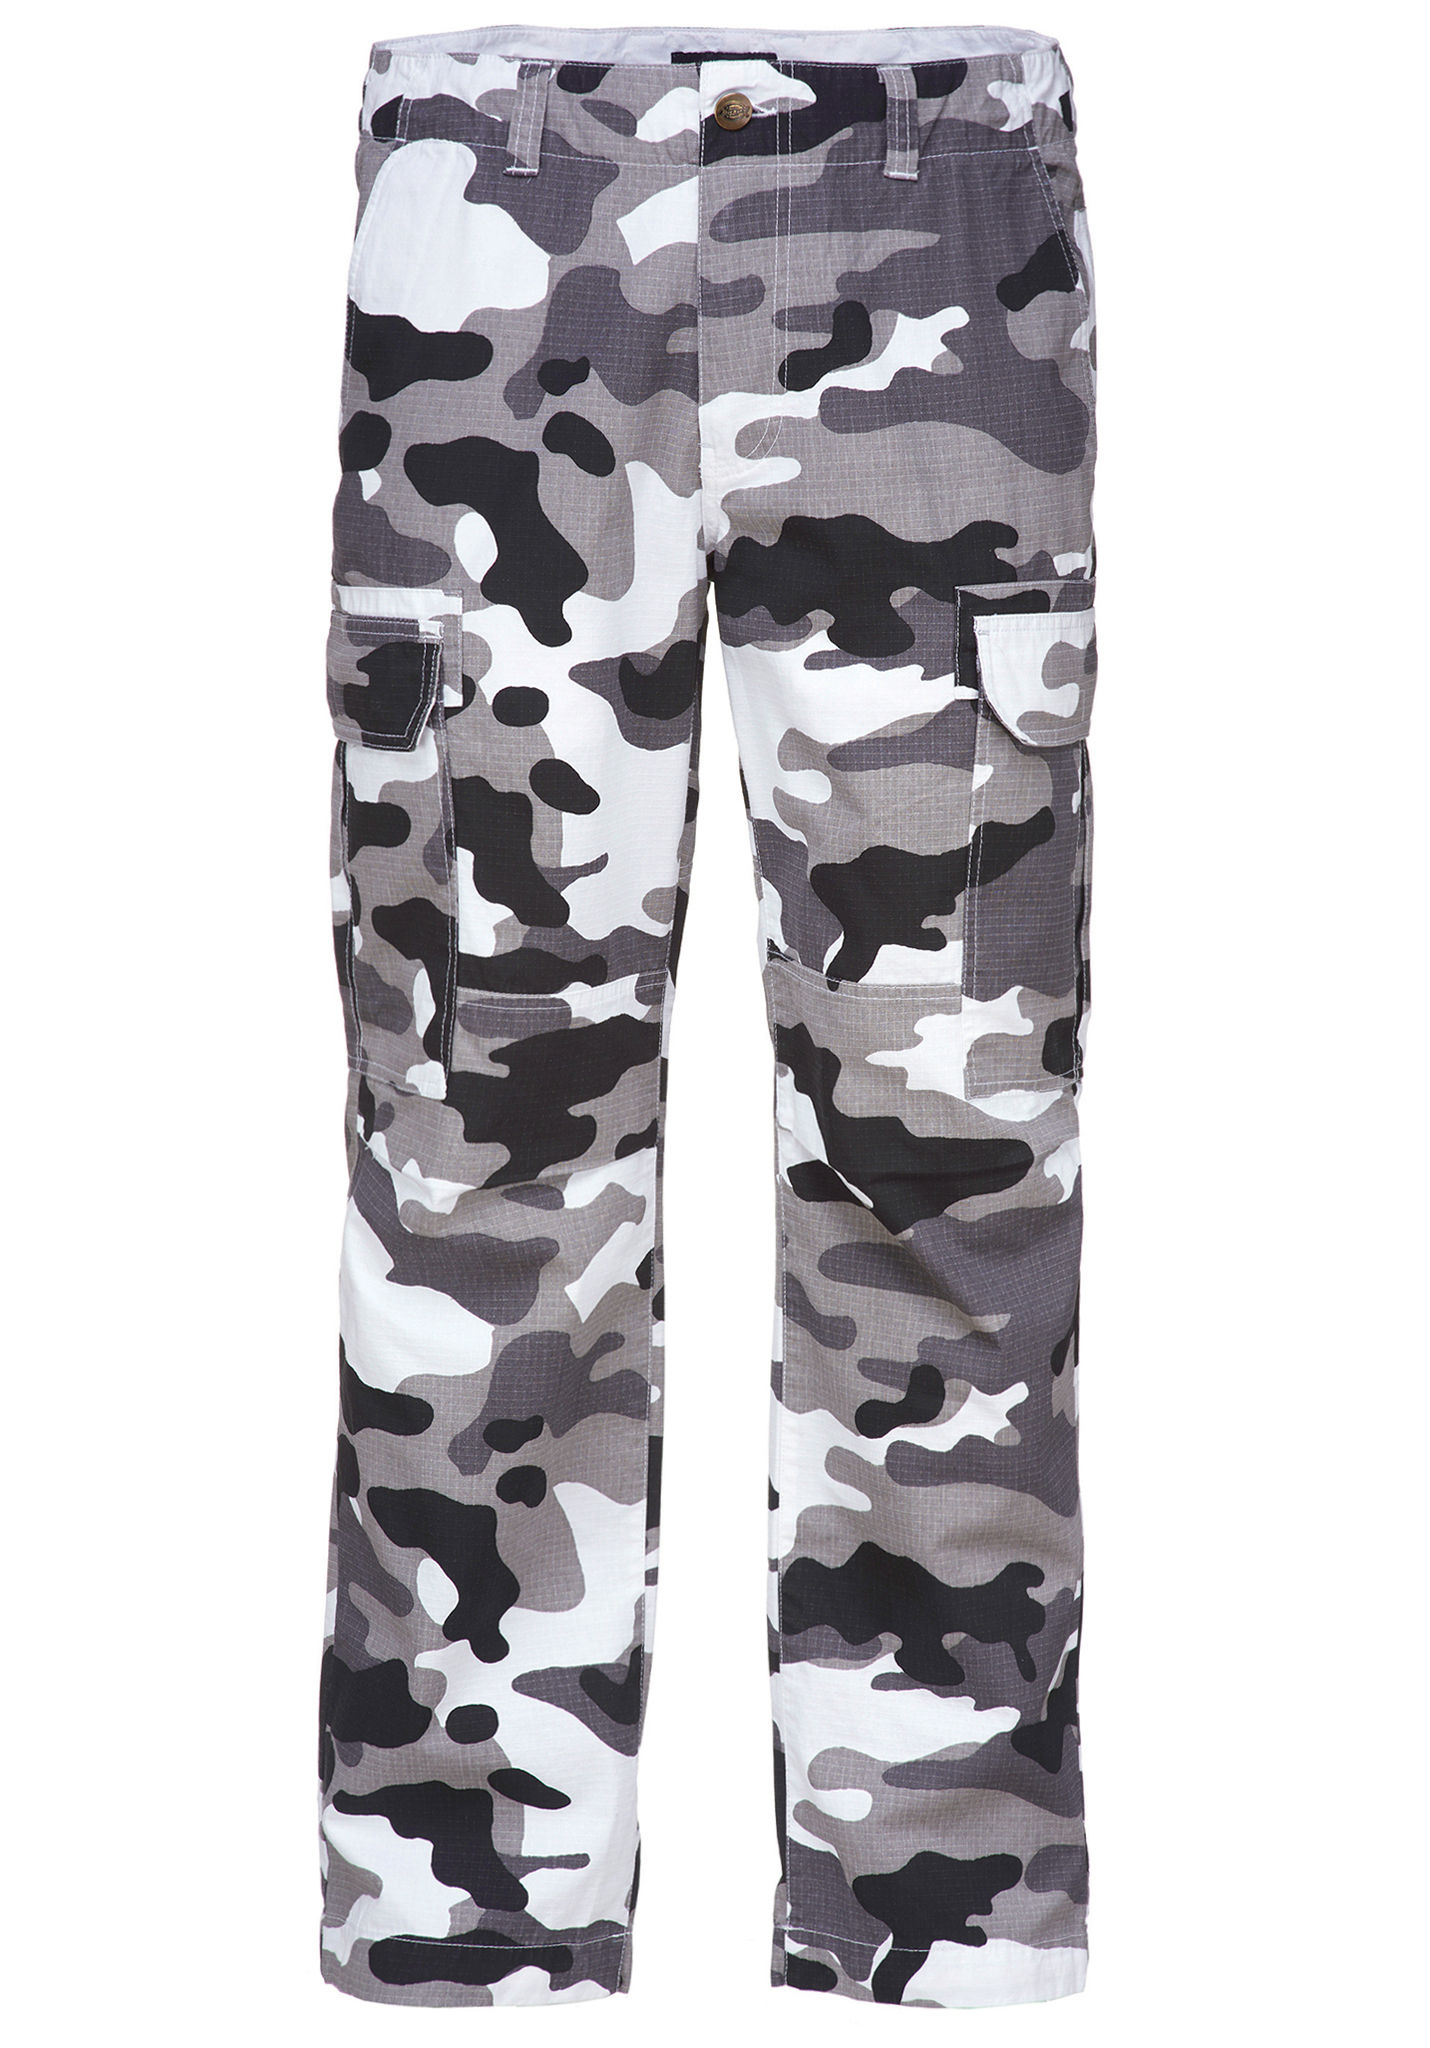 Per Sports York New Dickies Planet Camouflage Cargo Pantalone Uomo 8Ixqw